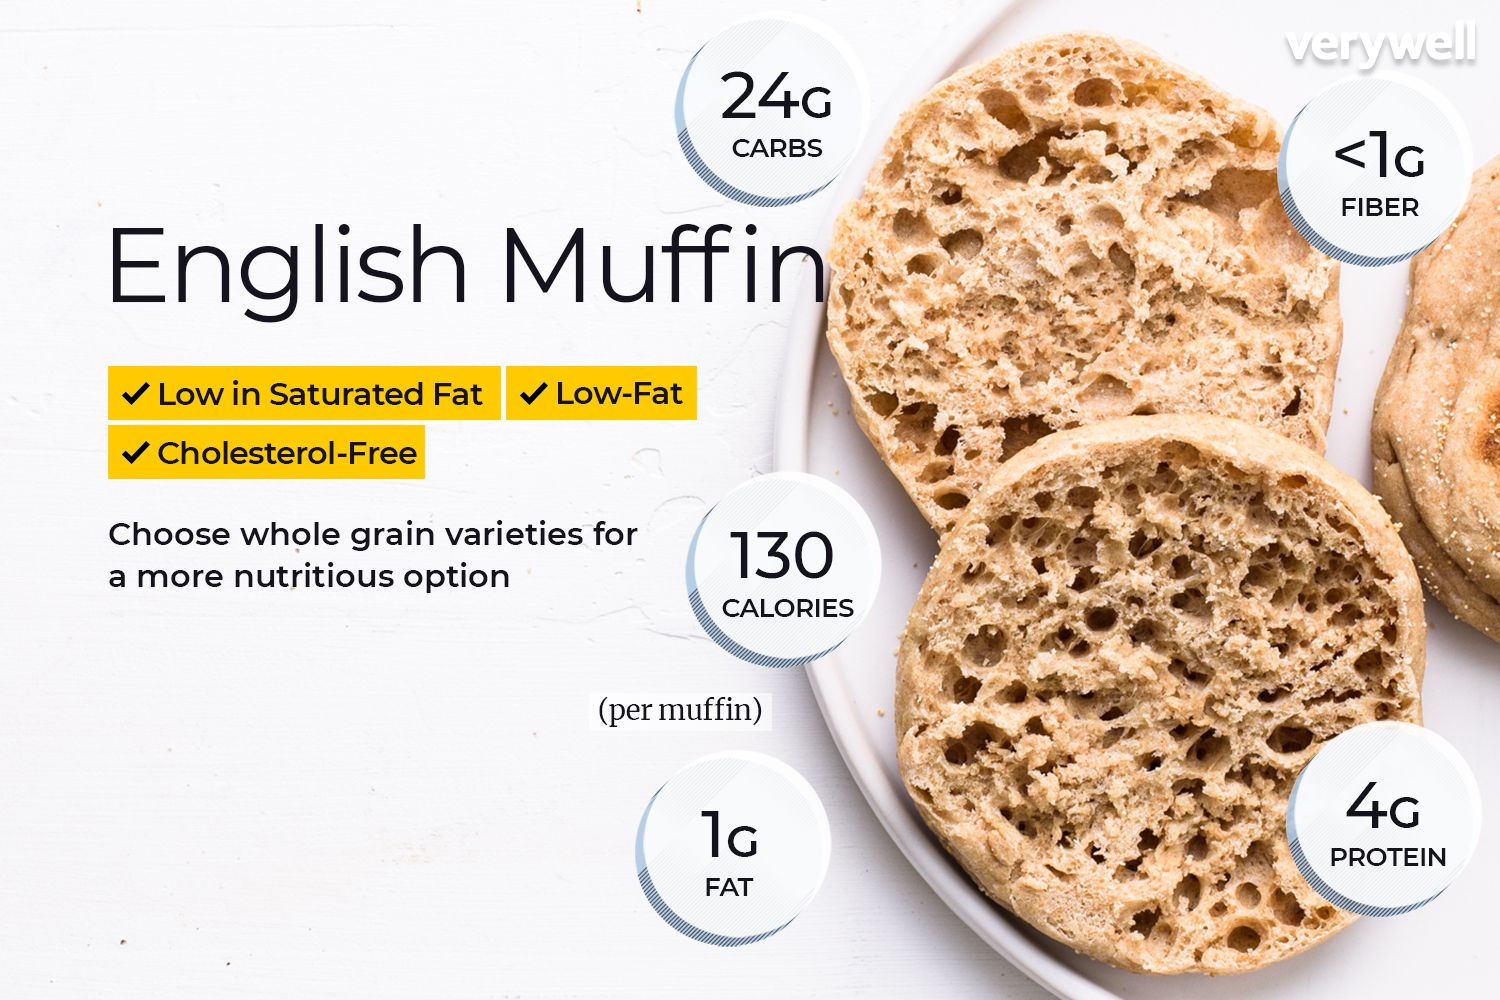 English Muffin Nutrition Facts